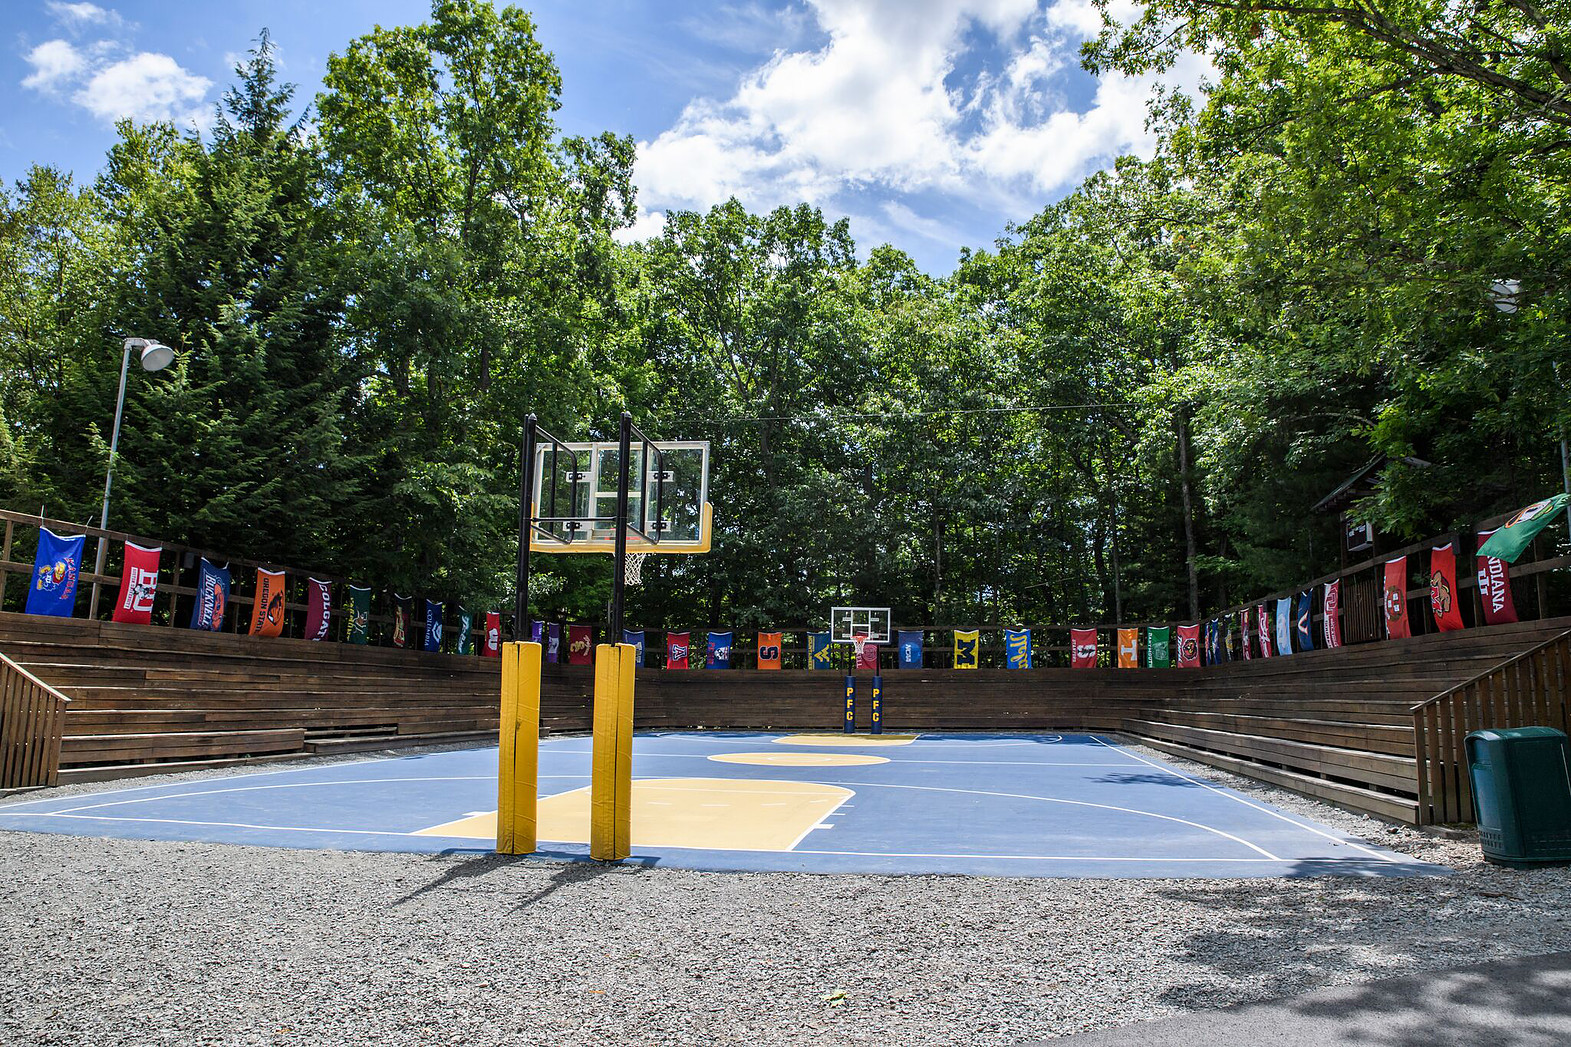 PFC Basketball Court